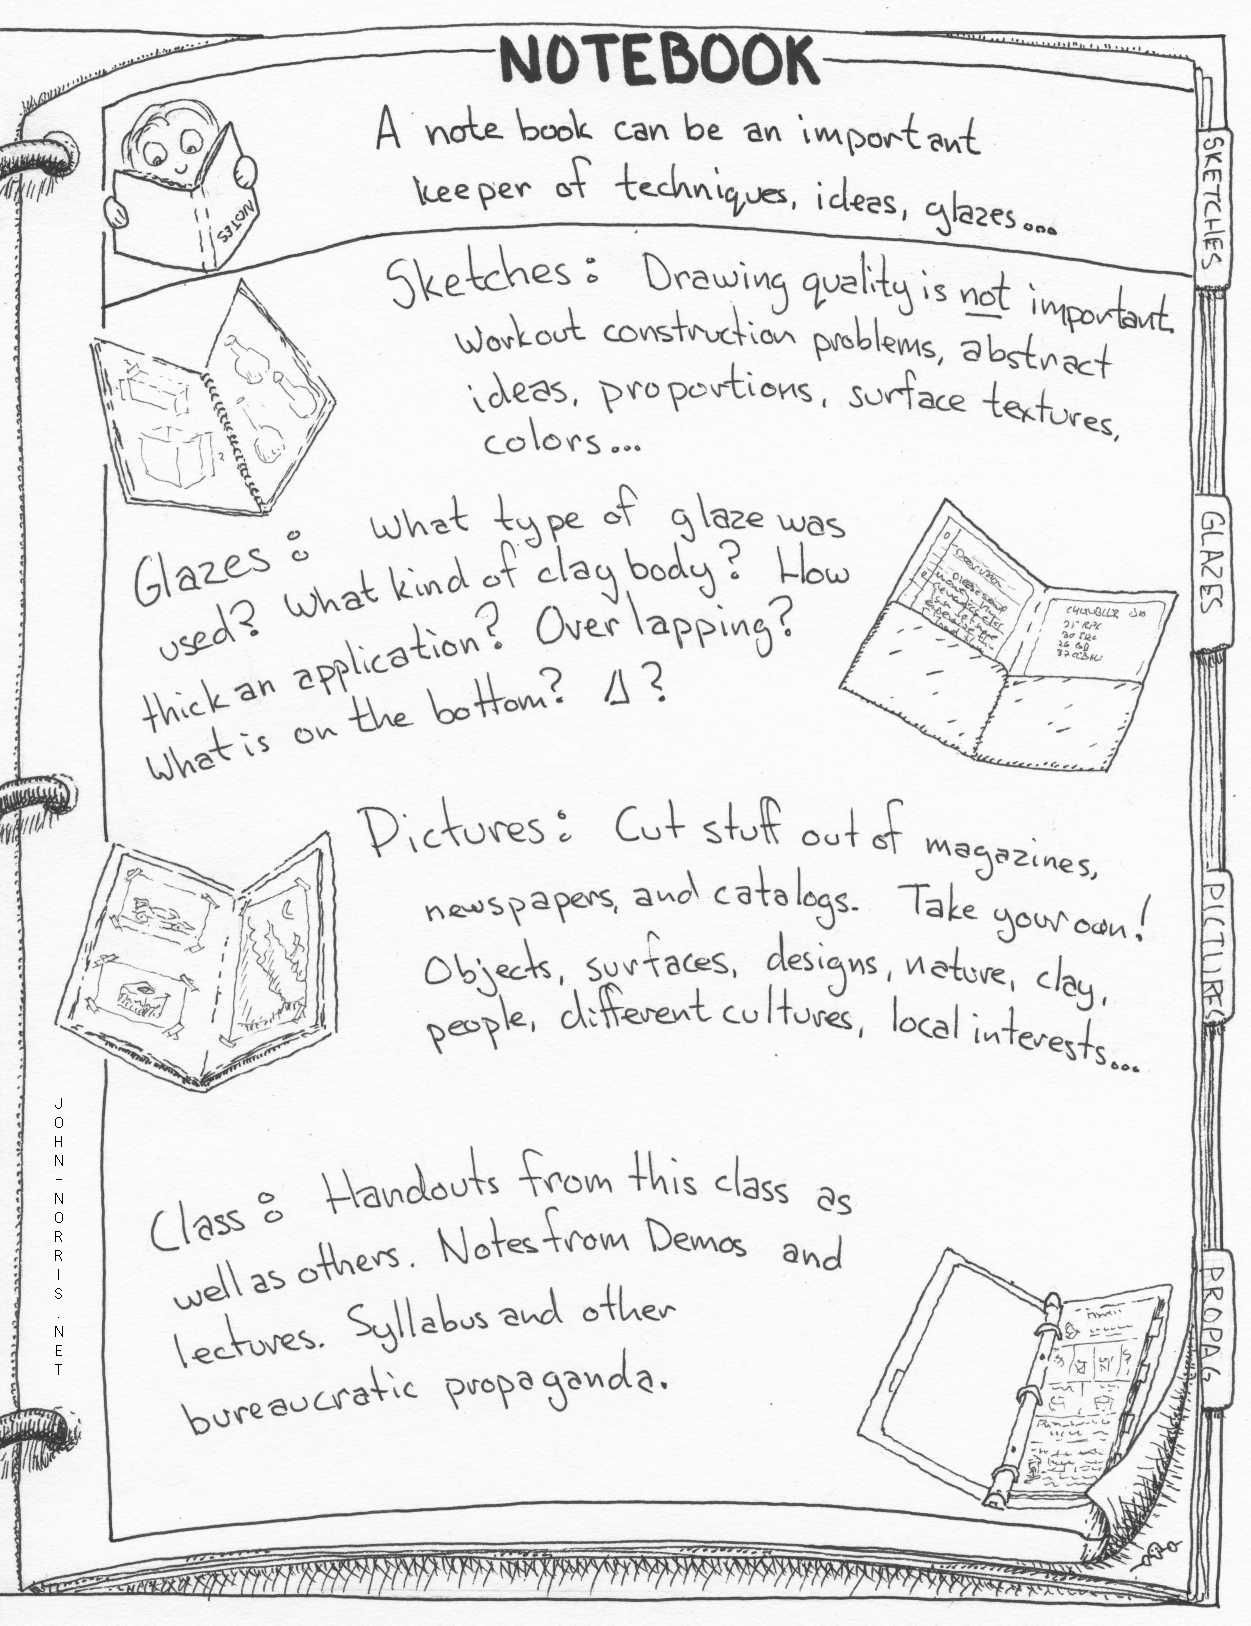 Potter S Notebook One Of The Most Important Things I Ve